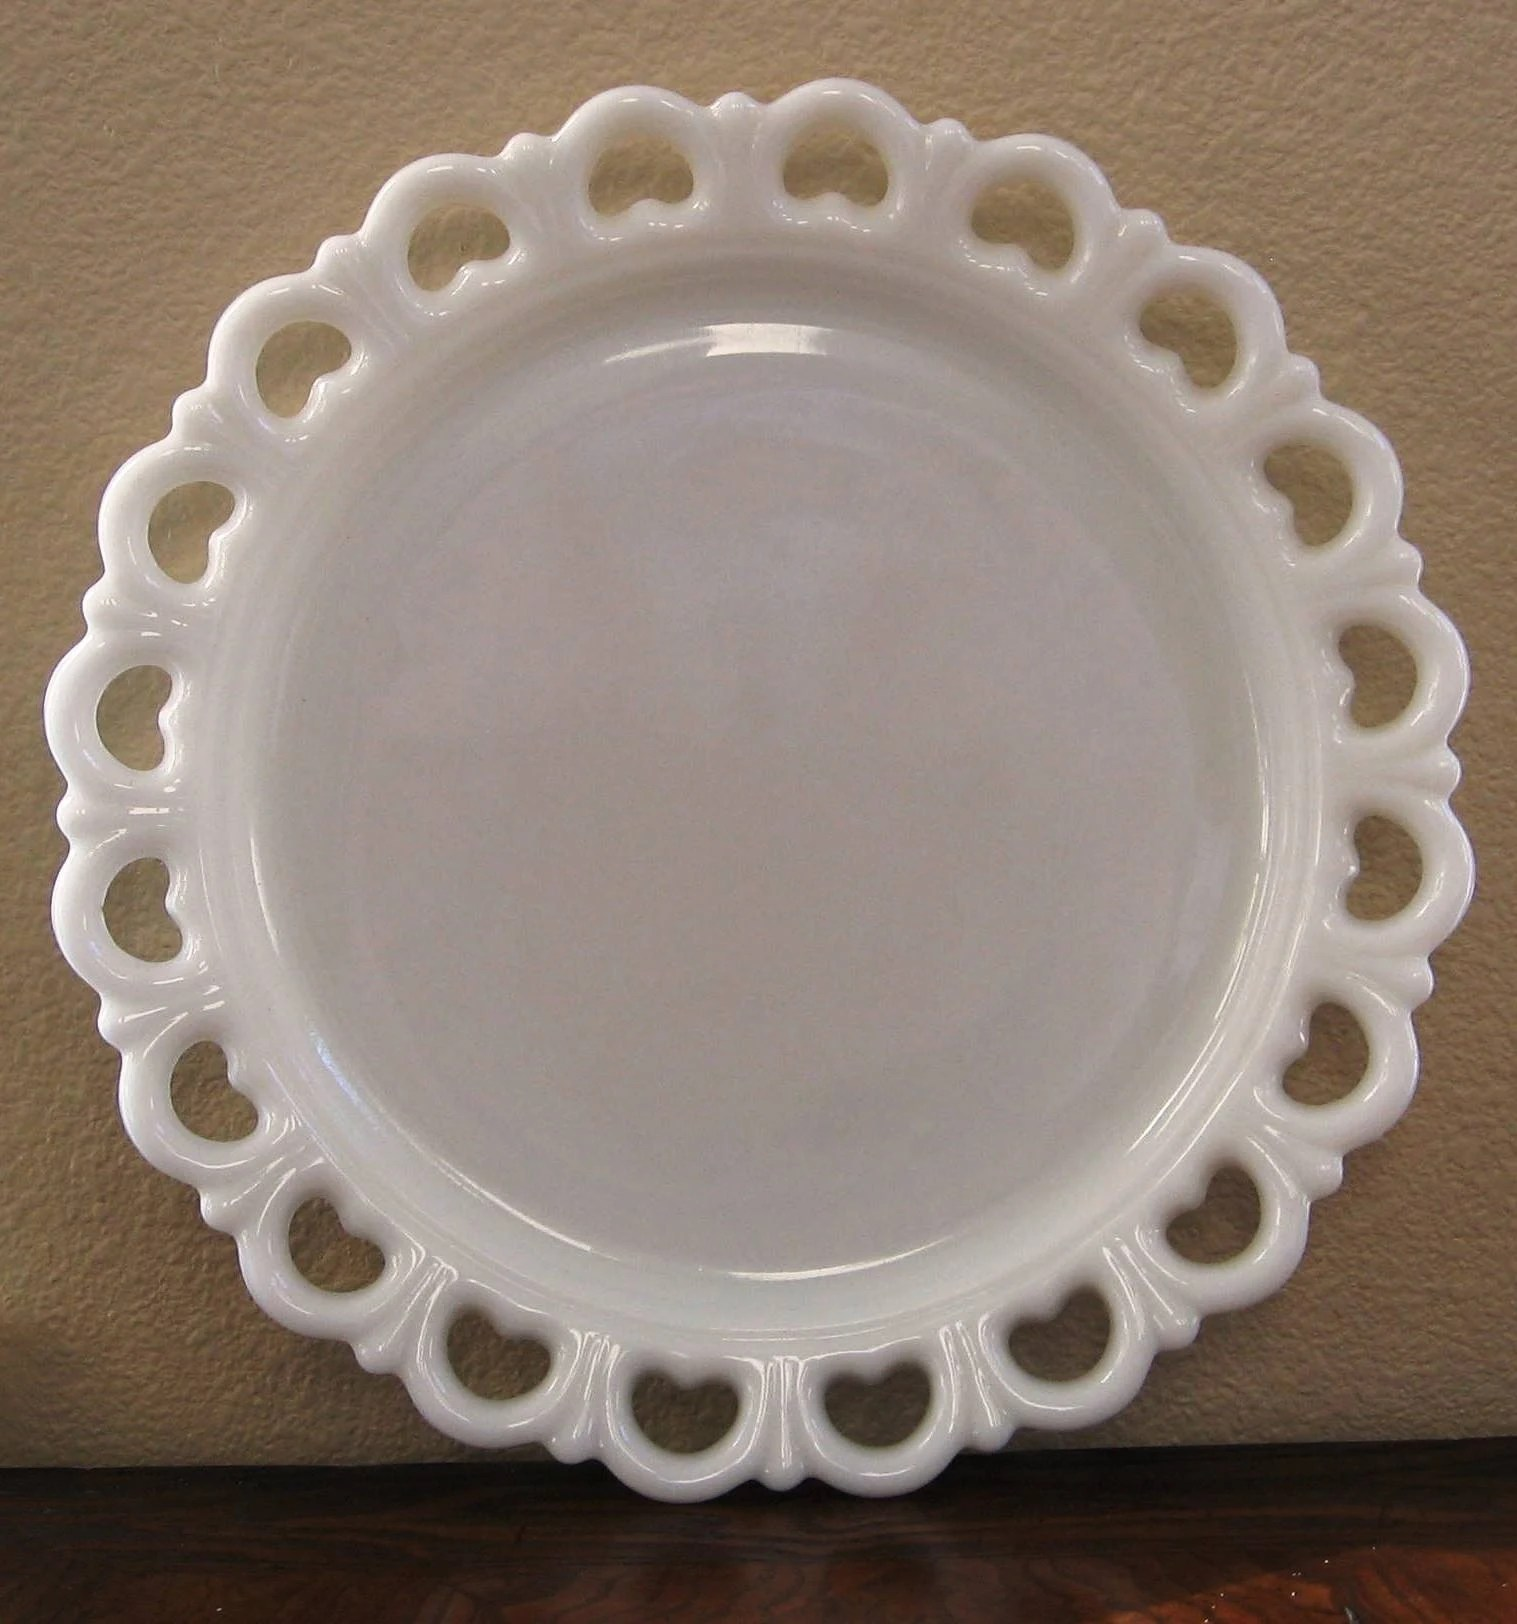 Vintage Milk Glass Plate with Lace Scalloped Edge